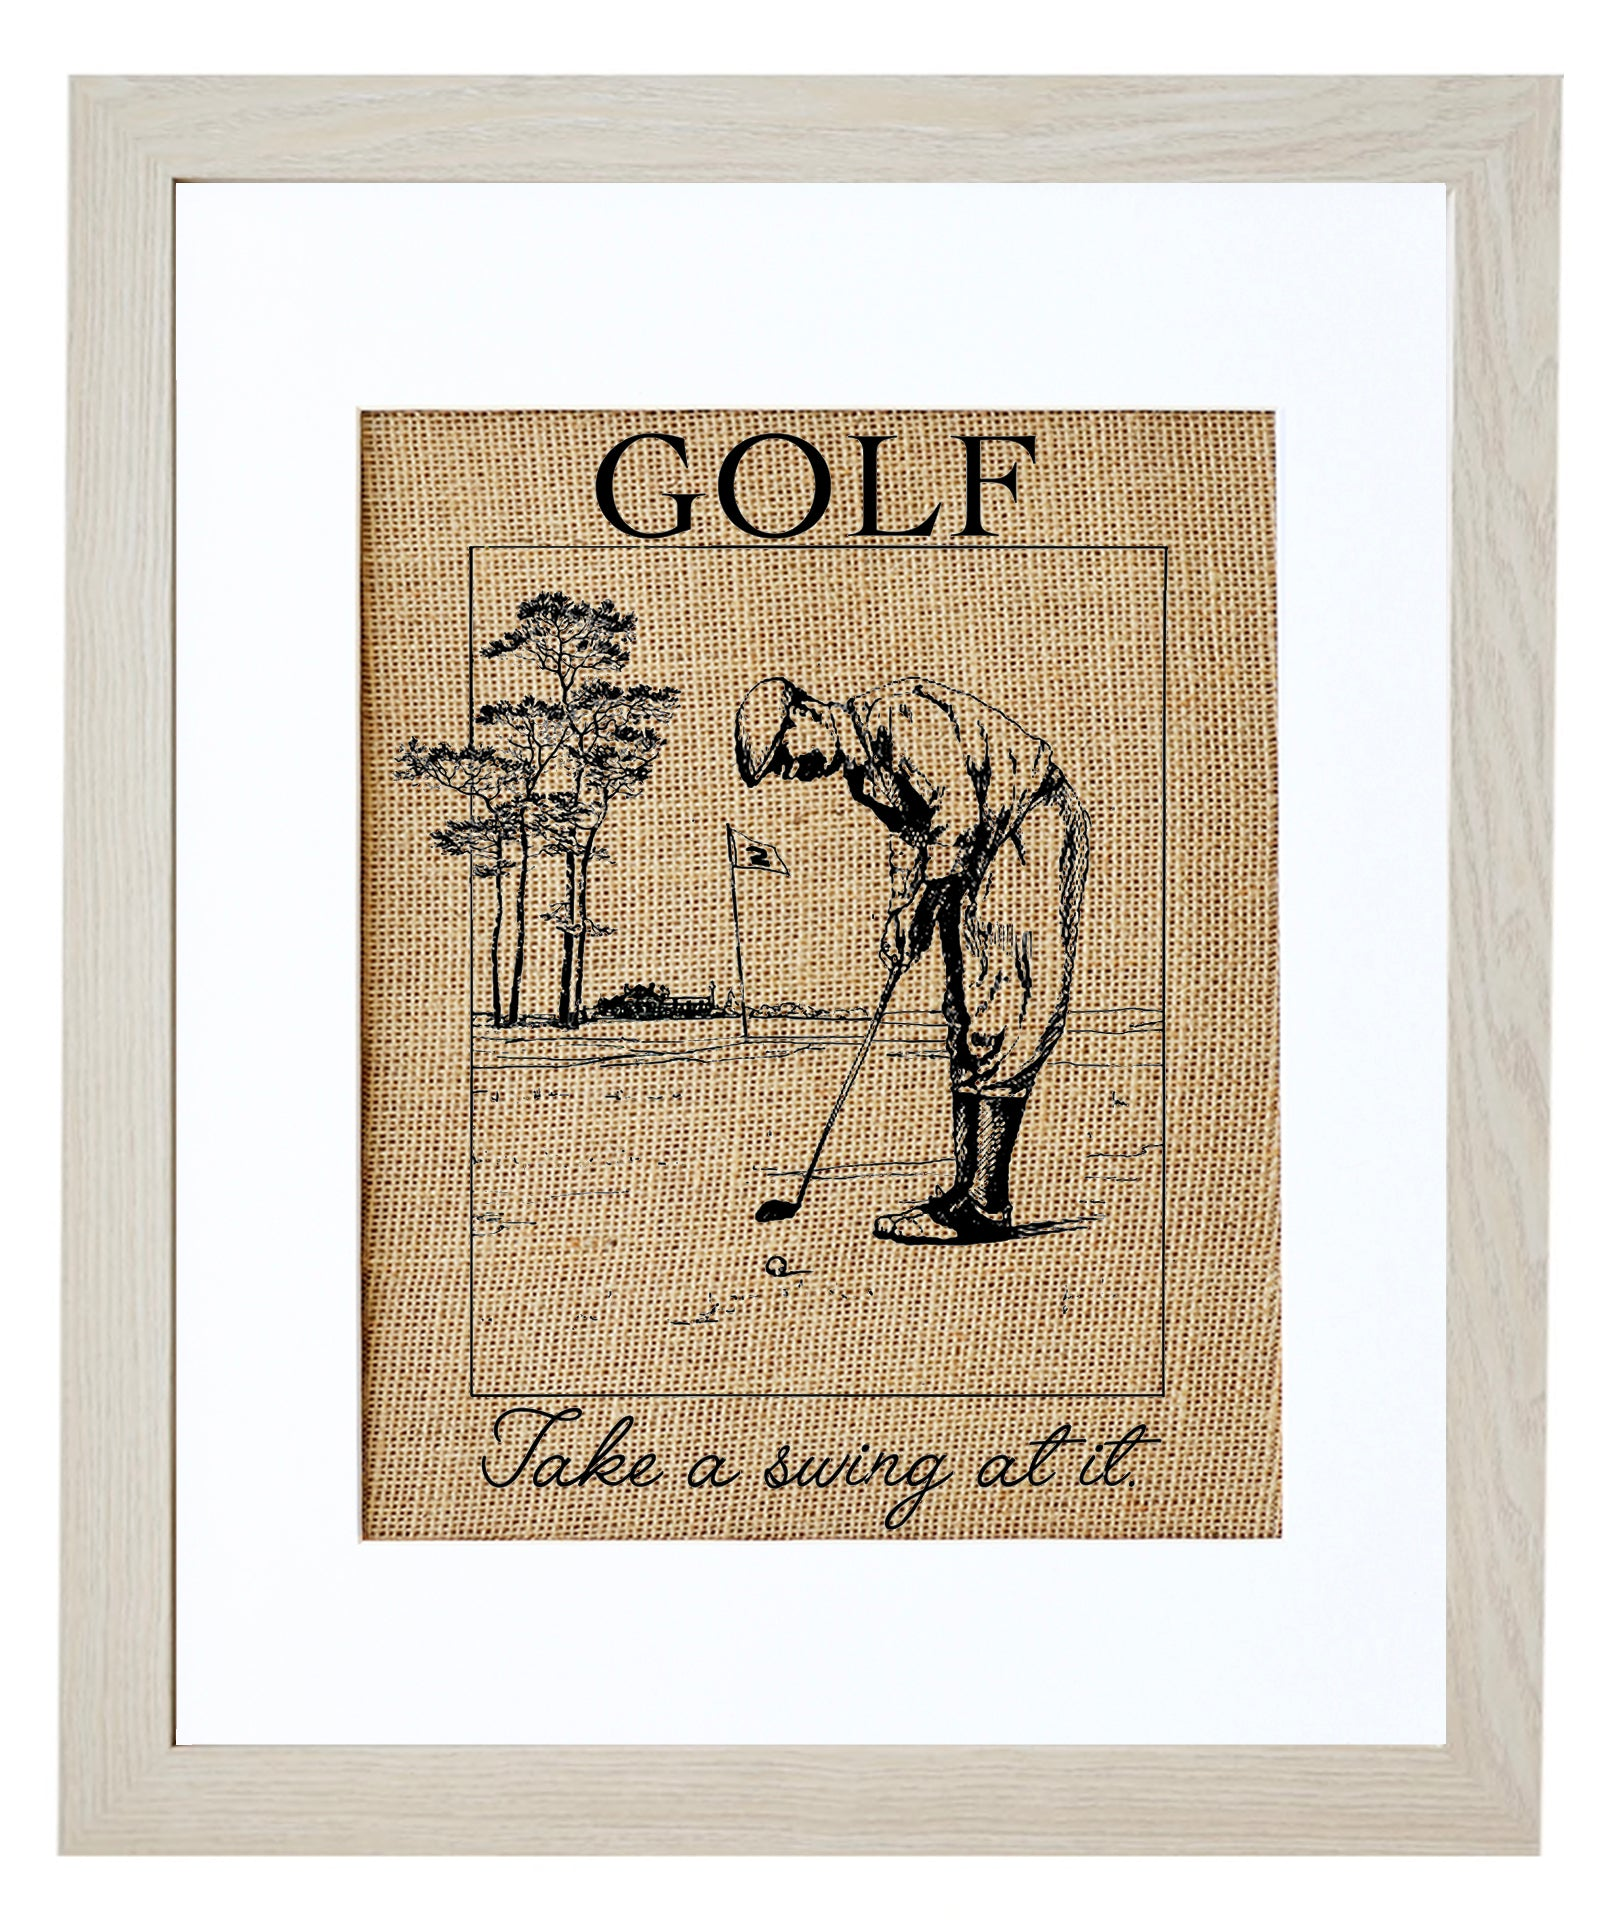 Golf, Take a Swing at it